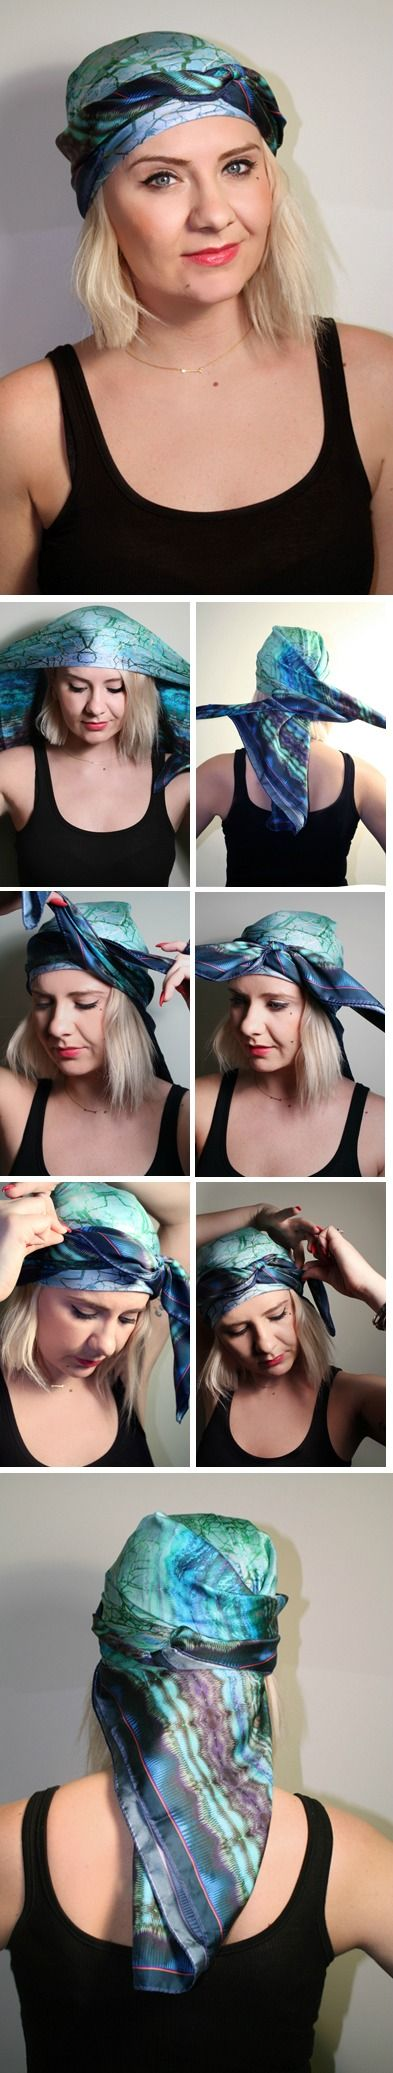 How to Tie a Scarf: Boho Wrap